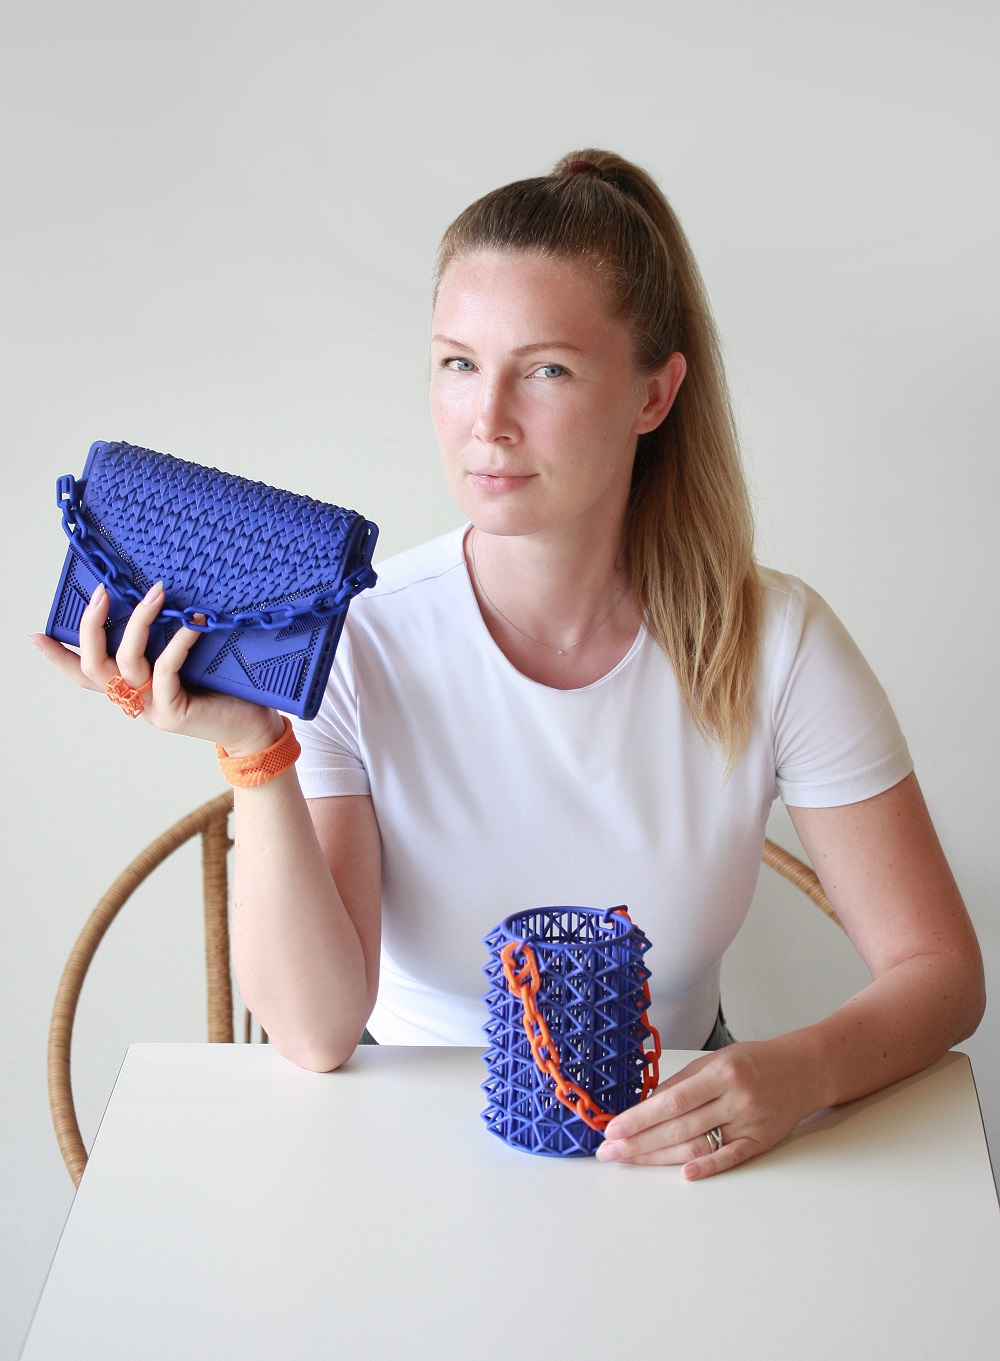 From Swarovski Competition To Reusable Bag: How An Innovative Designer Created A Fully 3D-Printed Purse